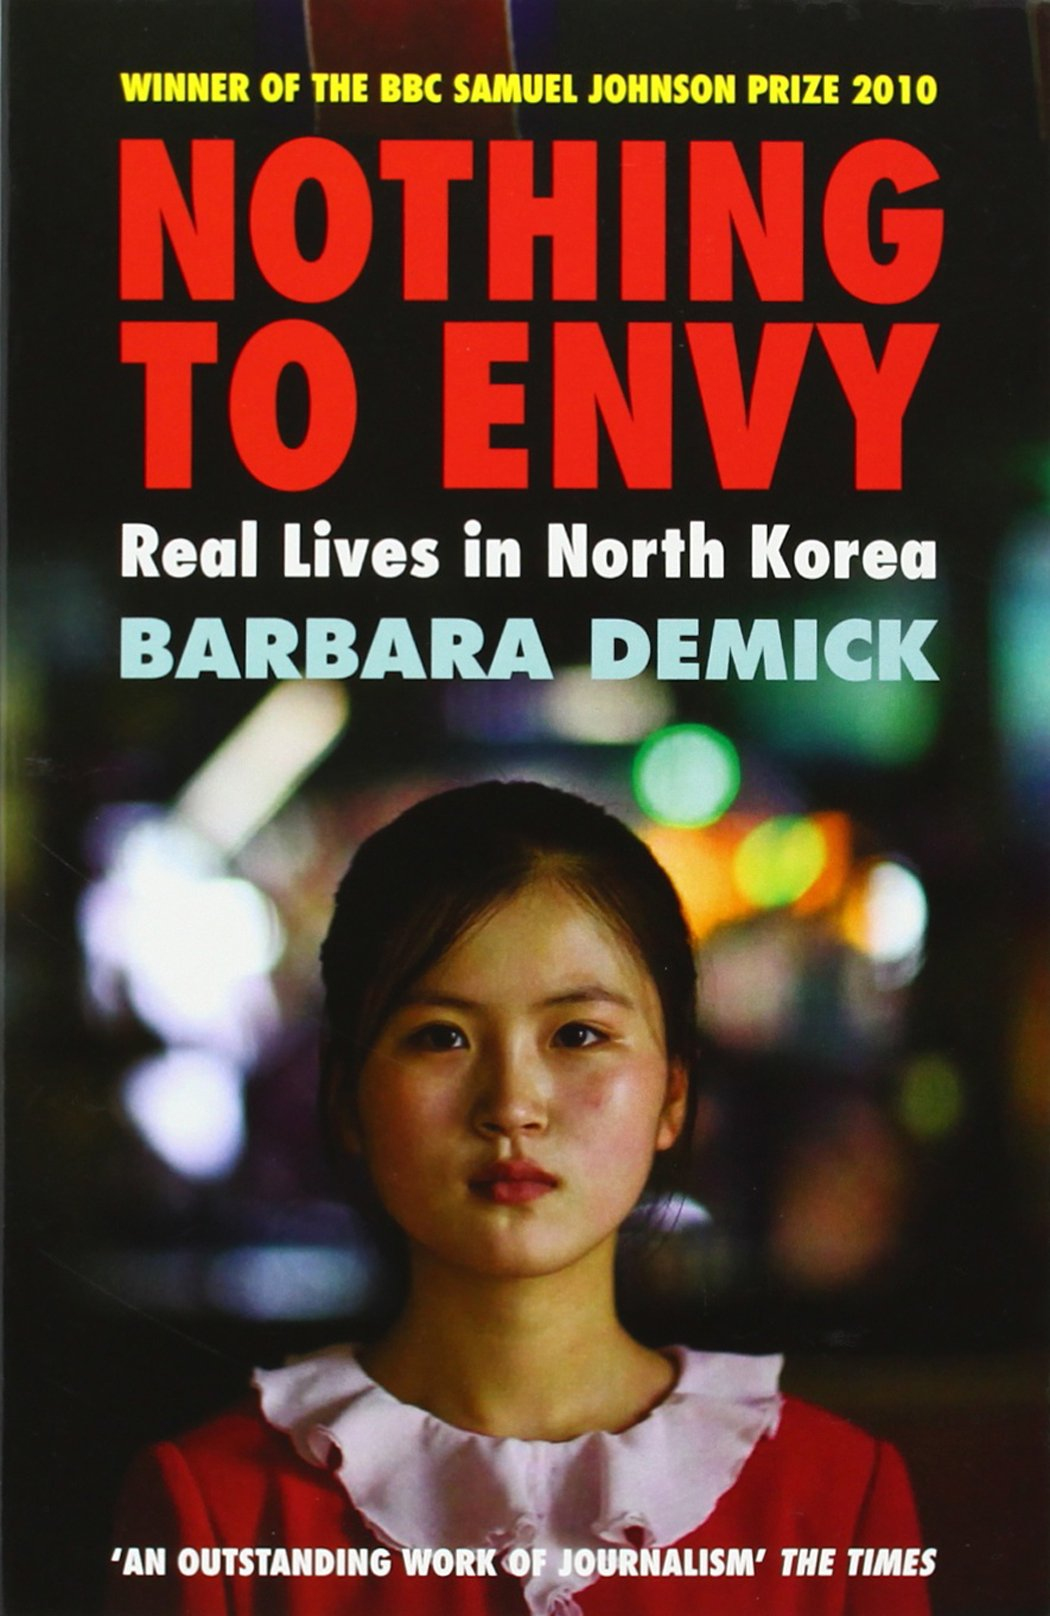 Nothing to Envy - This prize-winning book recounts how North Koreans are told they live in the perfect nation even though they have experienced famine so severe that people commonly stumbled over bodies in the street and resorted to eating bark. This nation of 23 million appears empty when photographed from space due to a lack of electricity. It is a country where people risk everything evading border guards to cross the Tumen River and flee to China.